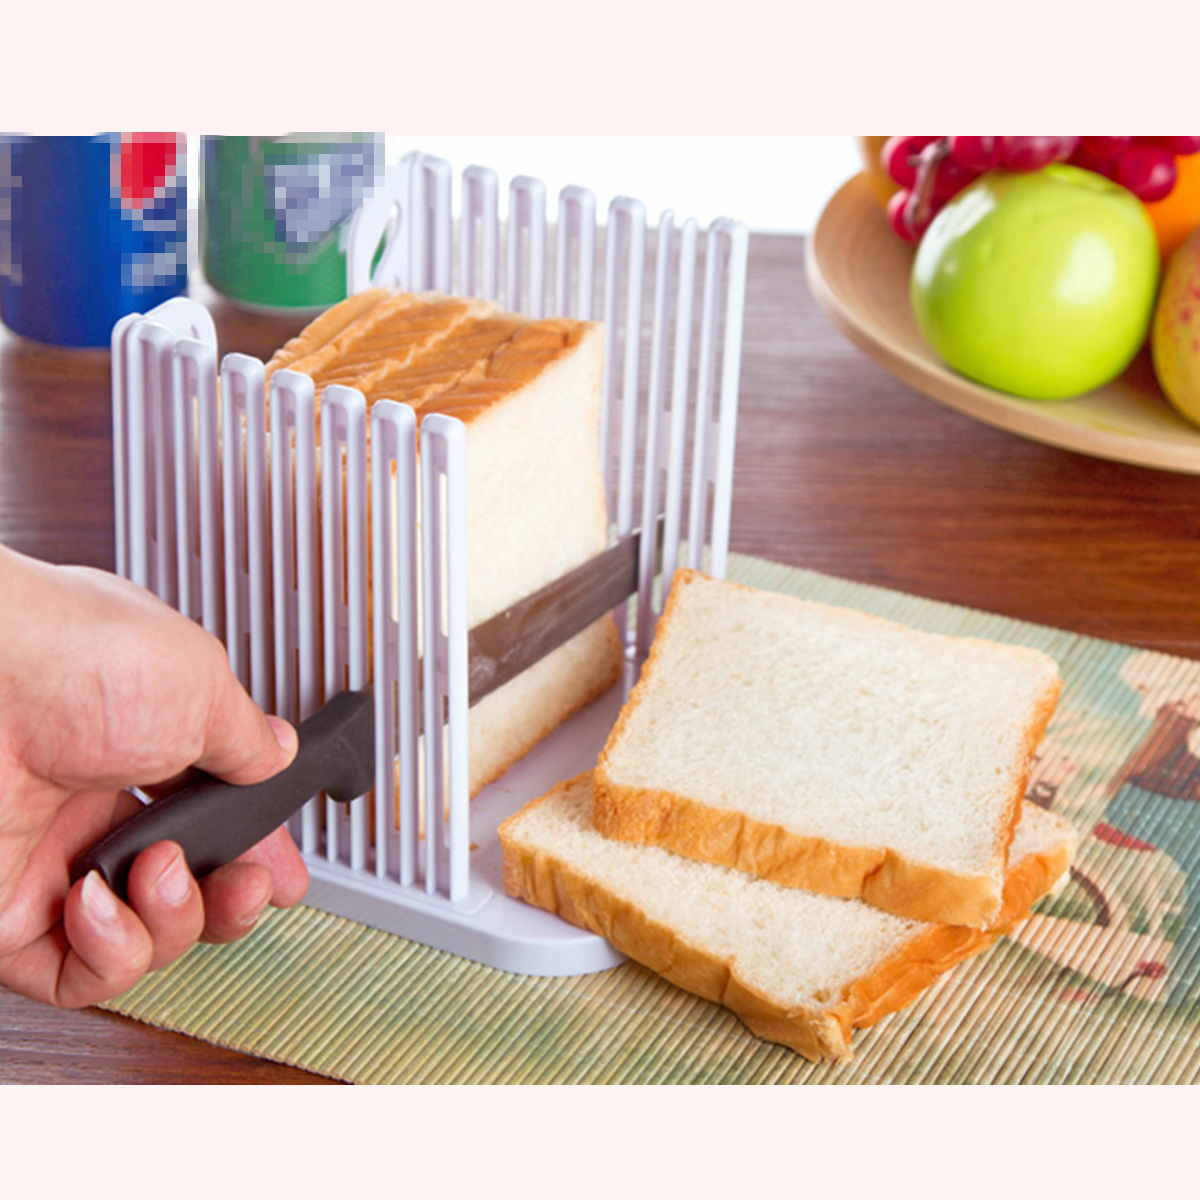 1/2Pcs Bread Slicer Cutter Foldable and Adjustable Bread Toast Slicer Bagel Slicer Loaf Sandwich Bread Slicer Toast Slice 1/2Pcs Cutter Mold